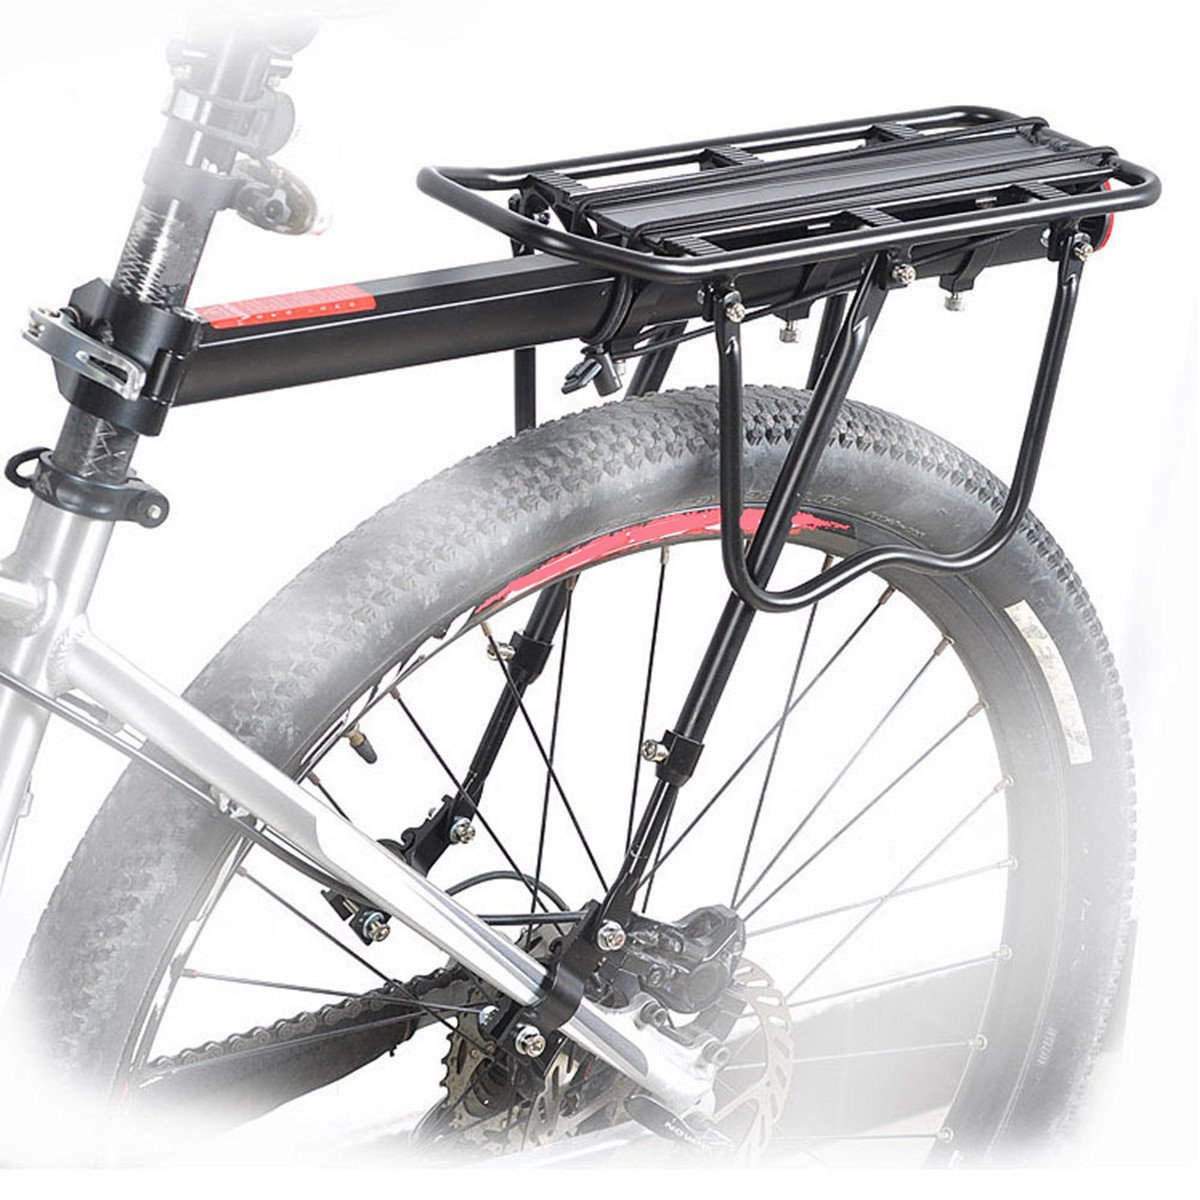 OUTERDO Bike Cargo Racks Bicycle Bike Alloy Rear Rack Seat Carrier Full Quick Release Luggage Protect Pannier Nerudytop